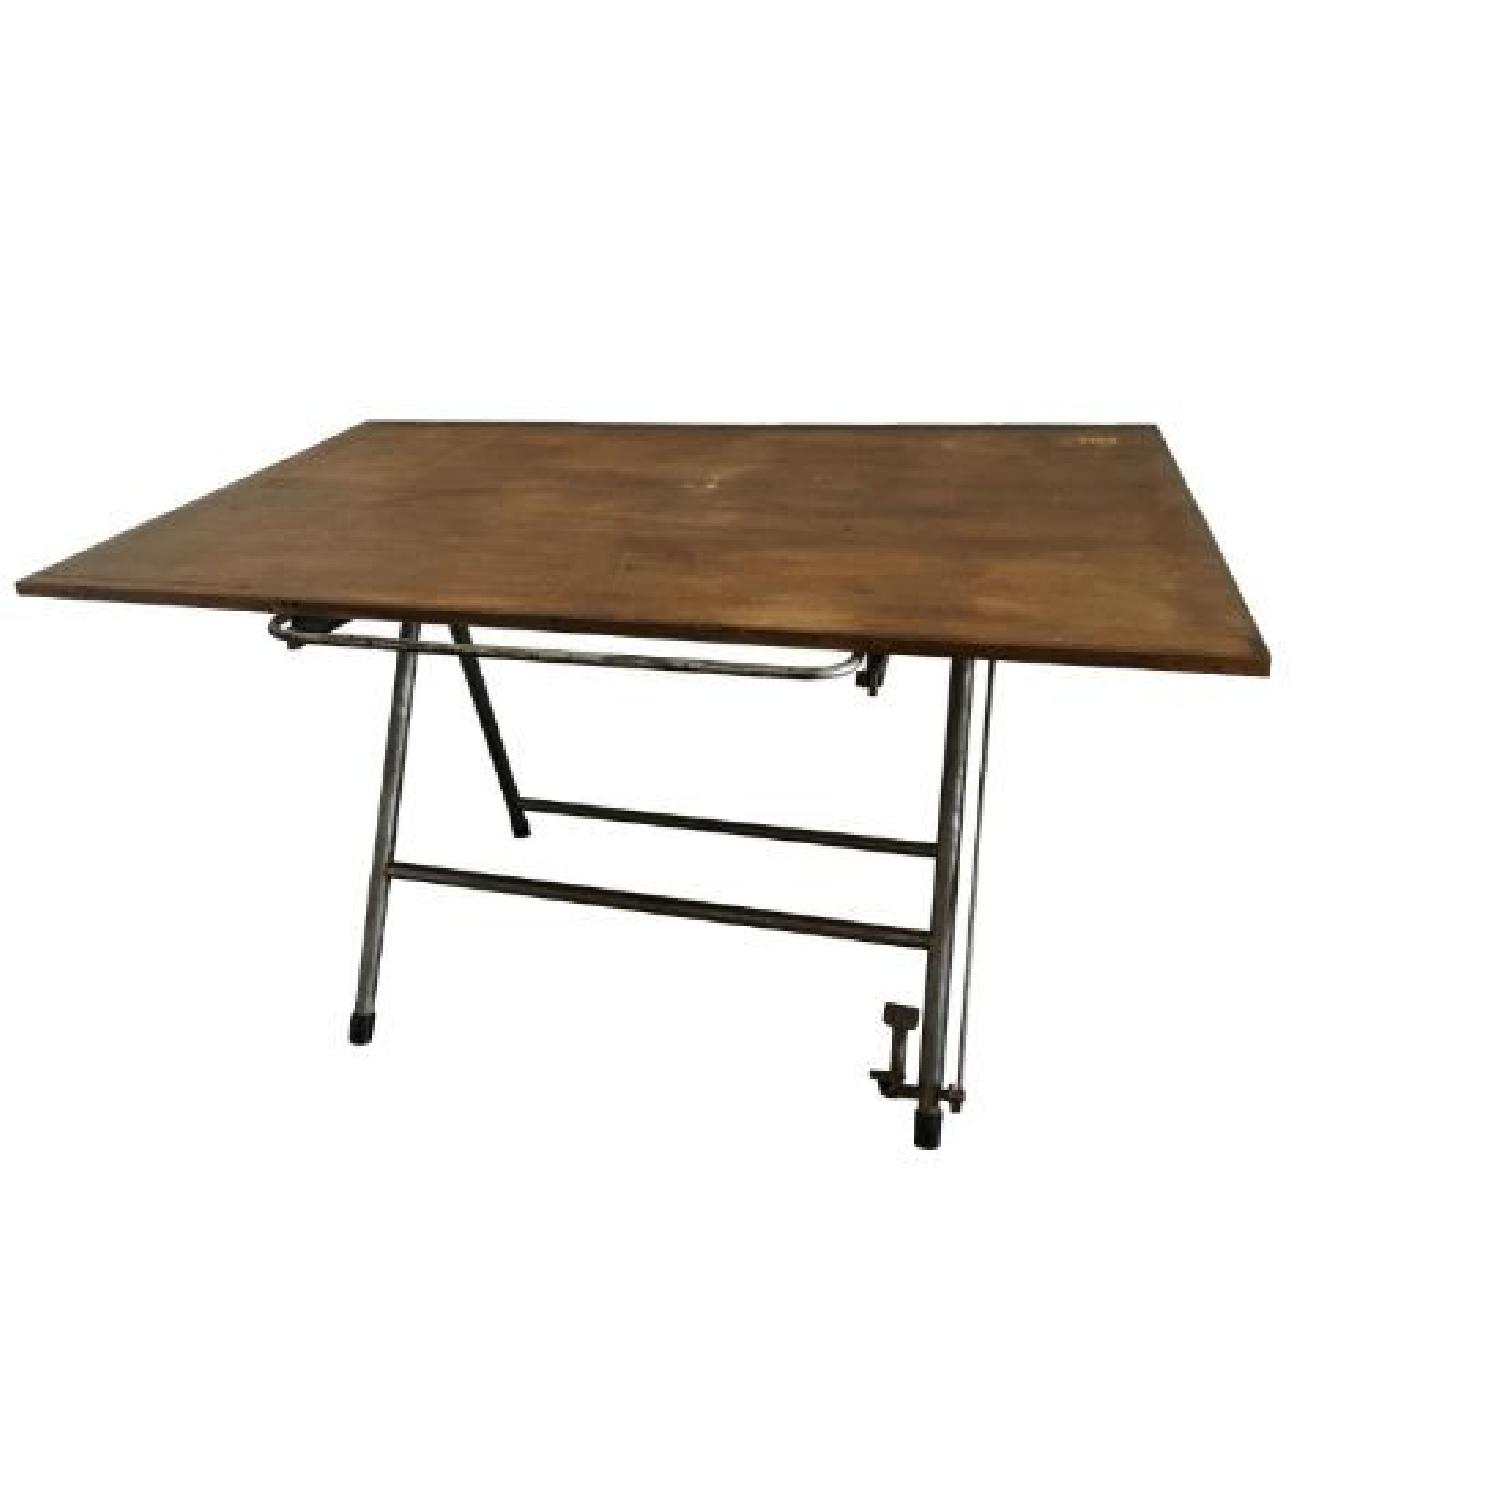 Vintage Industrial Architect Table - image-0